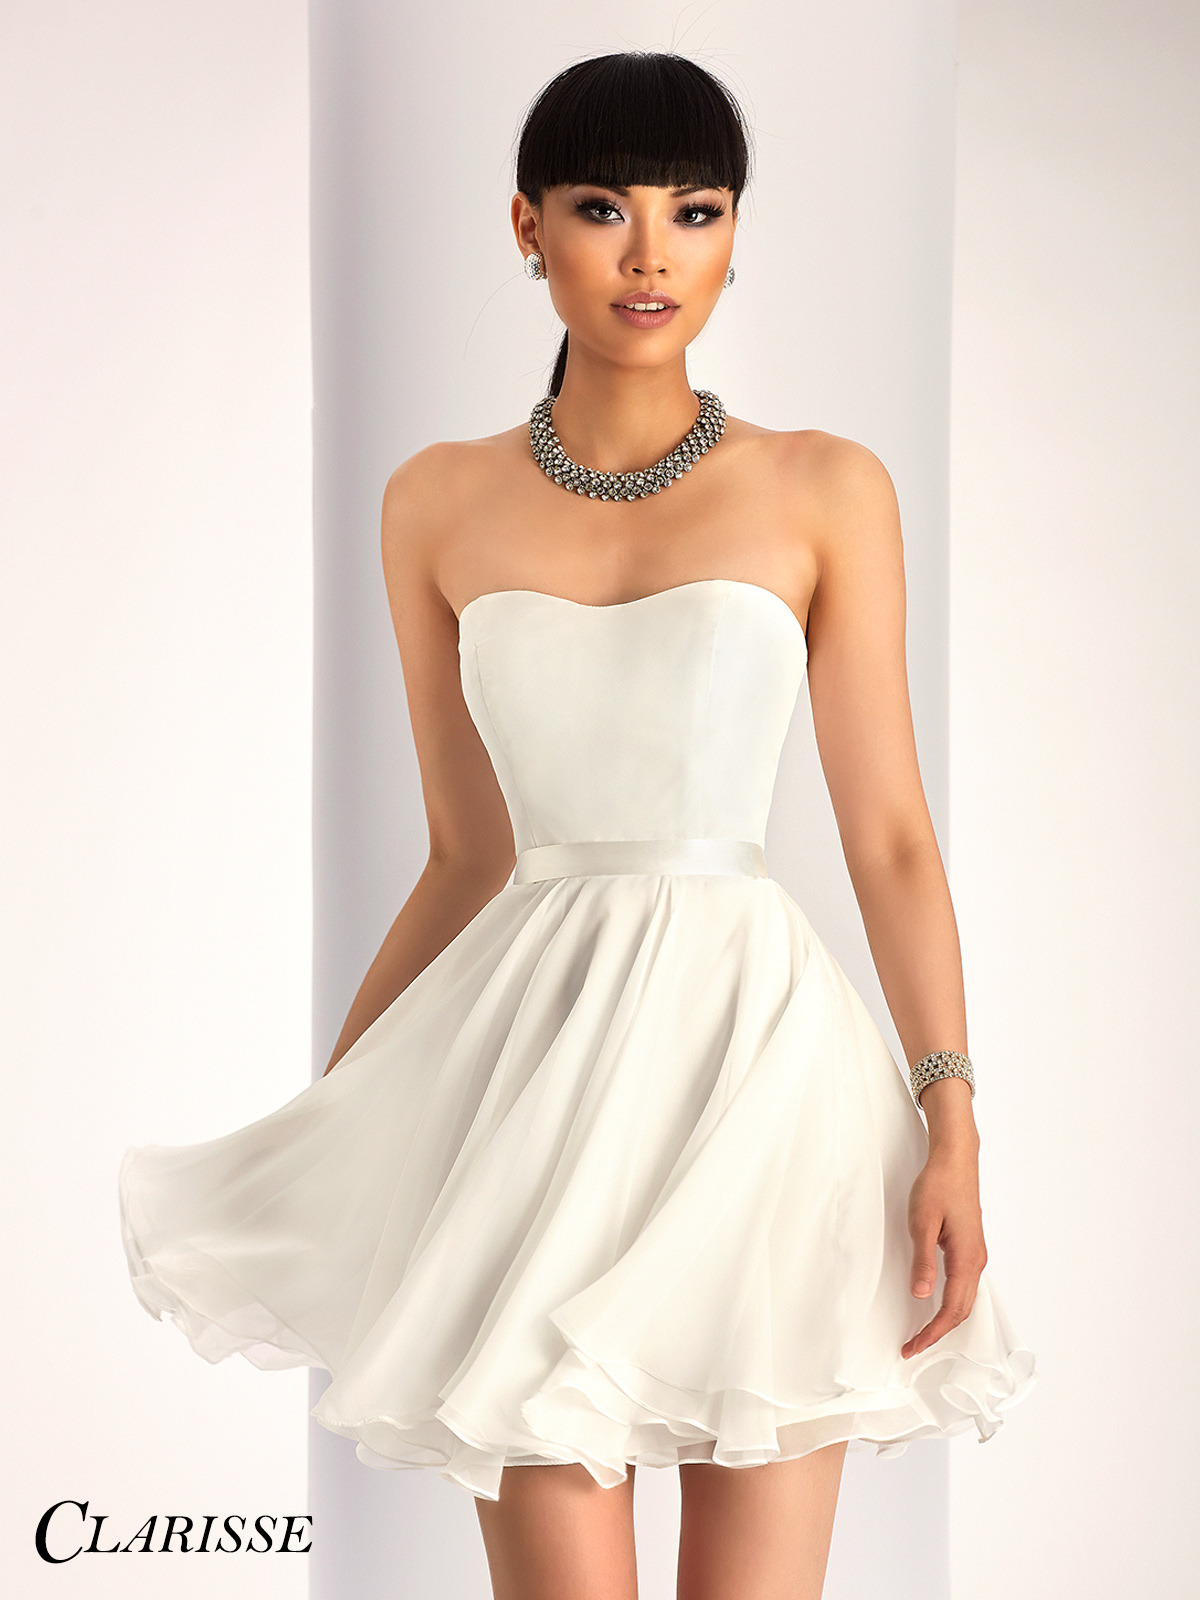 Clarisse Short Formal Dress 3215 | Promgirl.net